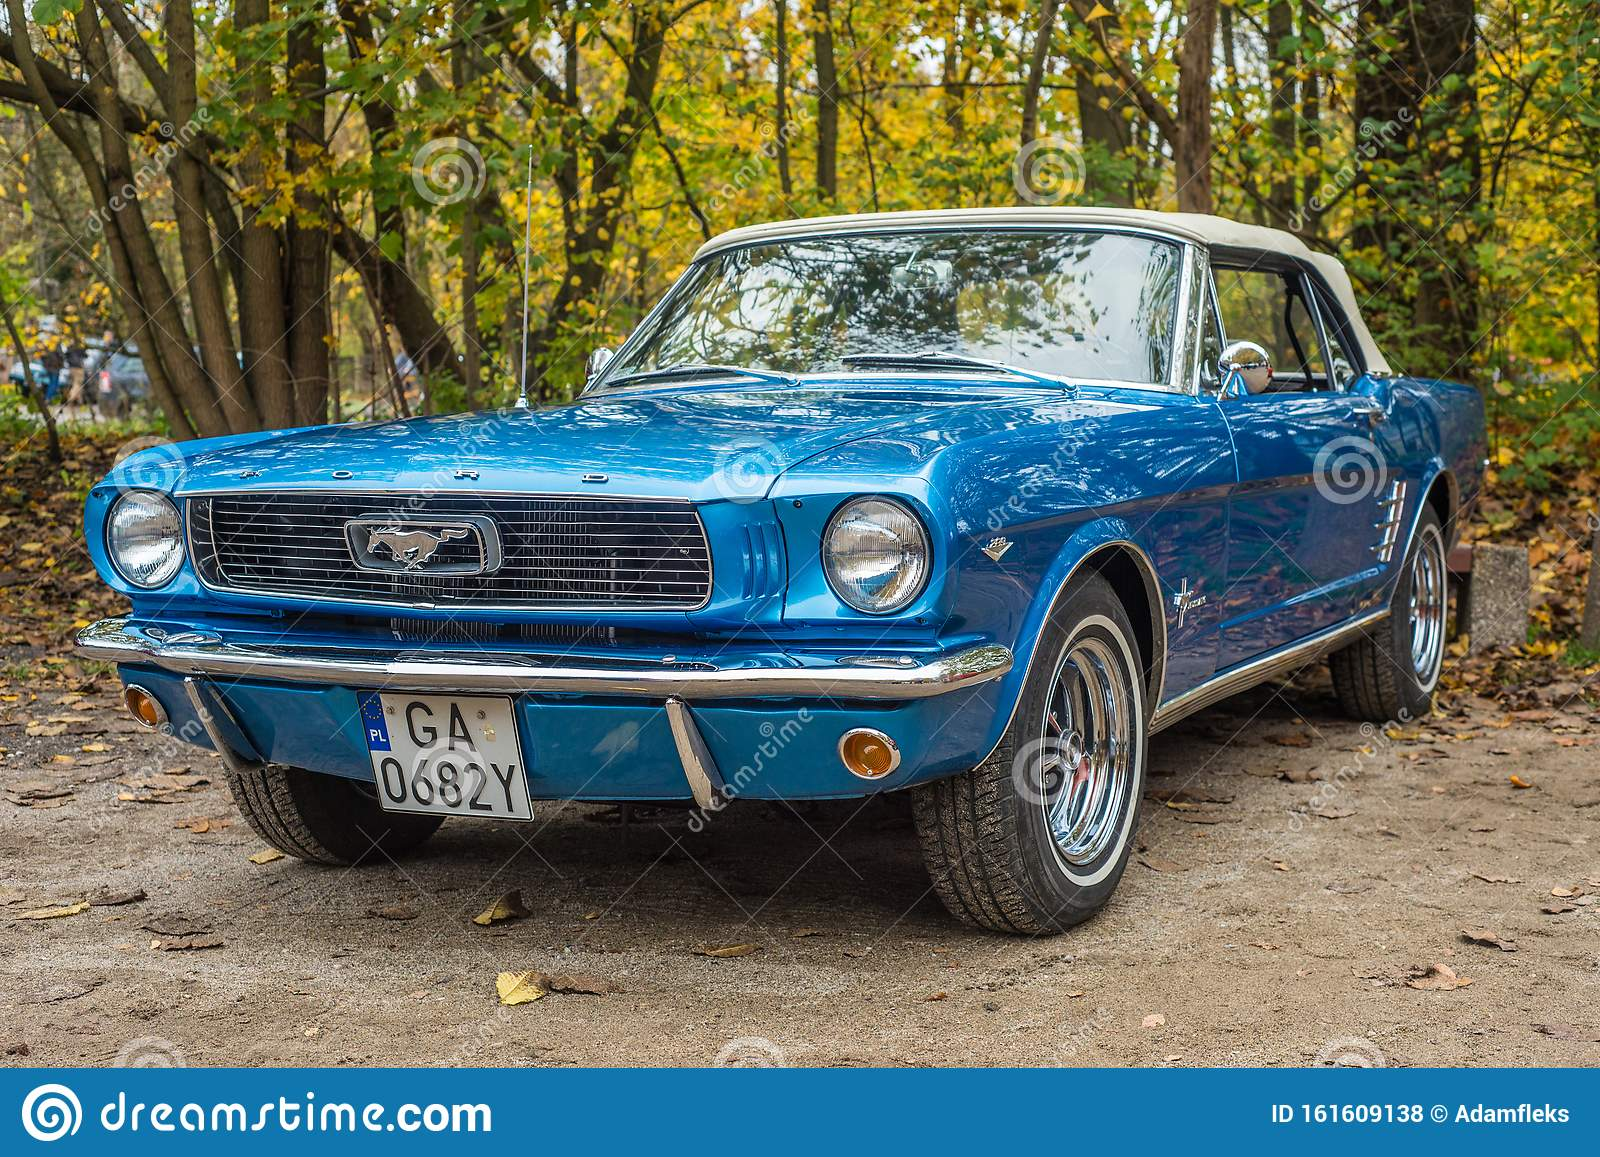 Classic Elegant And Shining Blue Ford Mustang At Car Show Editorial Stock Photo Image Of Ford Black 161609138